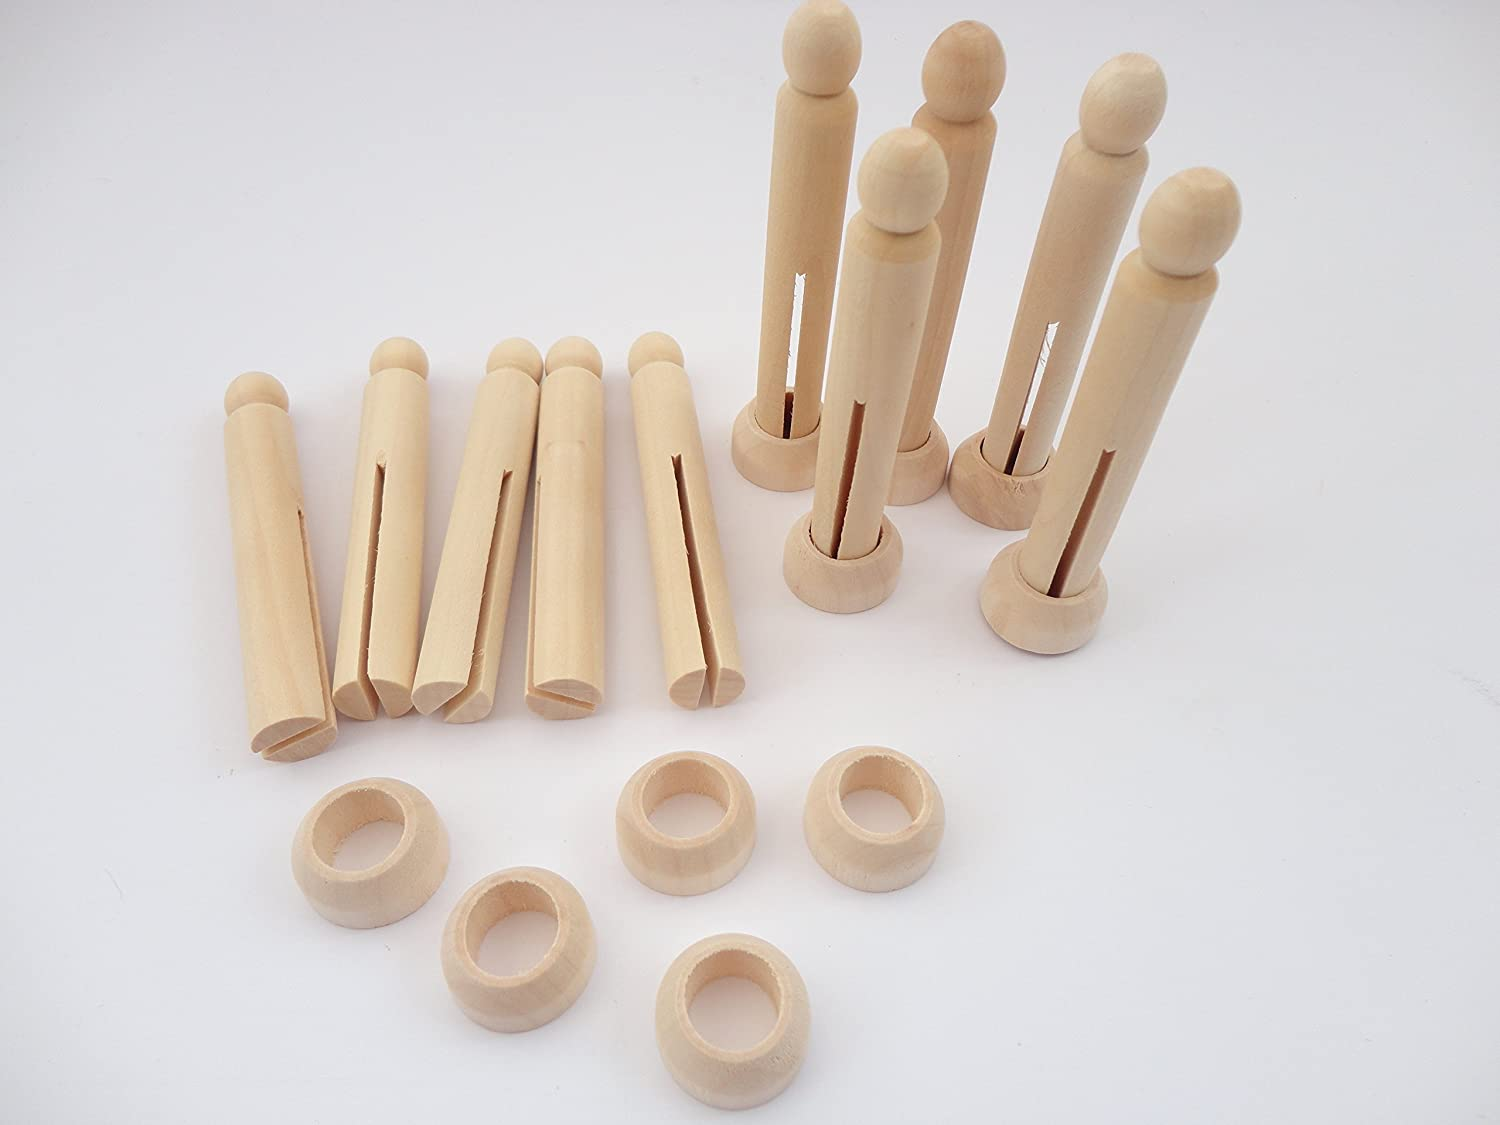 1,10,20,30,50 Natural Wooden Wood Dolly Pegs With Stands 95mm Craft Models - Pack Size: 5 a2bsales